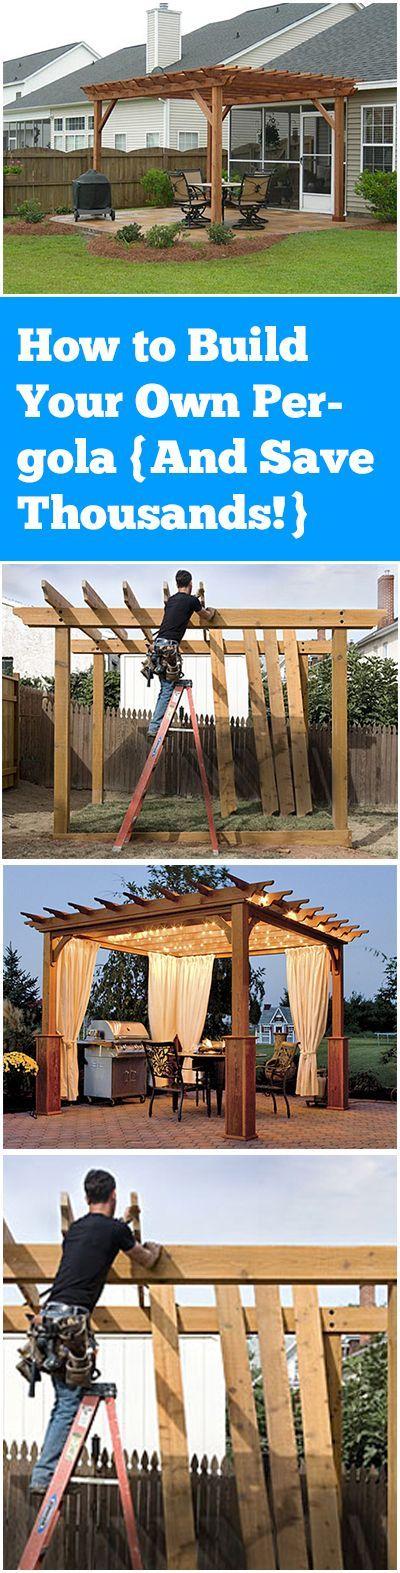 How to Build Your Own Pergola {And Save Thousands!} http://www.uk-rattanfurniture.com/product/homescapes-set-of-1-large-upholstered-kilim-bench-or-rectangular-coffee-table-and-2-small-footstools-handmade-solid-wood-frame-with-traditional-hand-woven-wool-rug-cover/